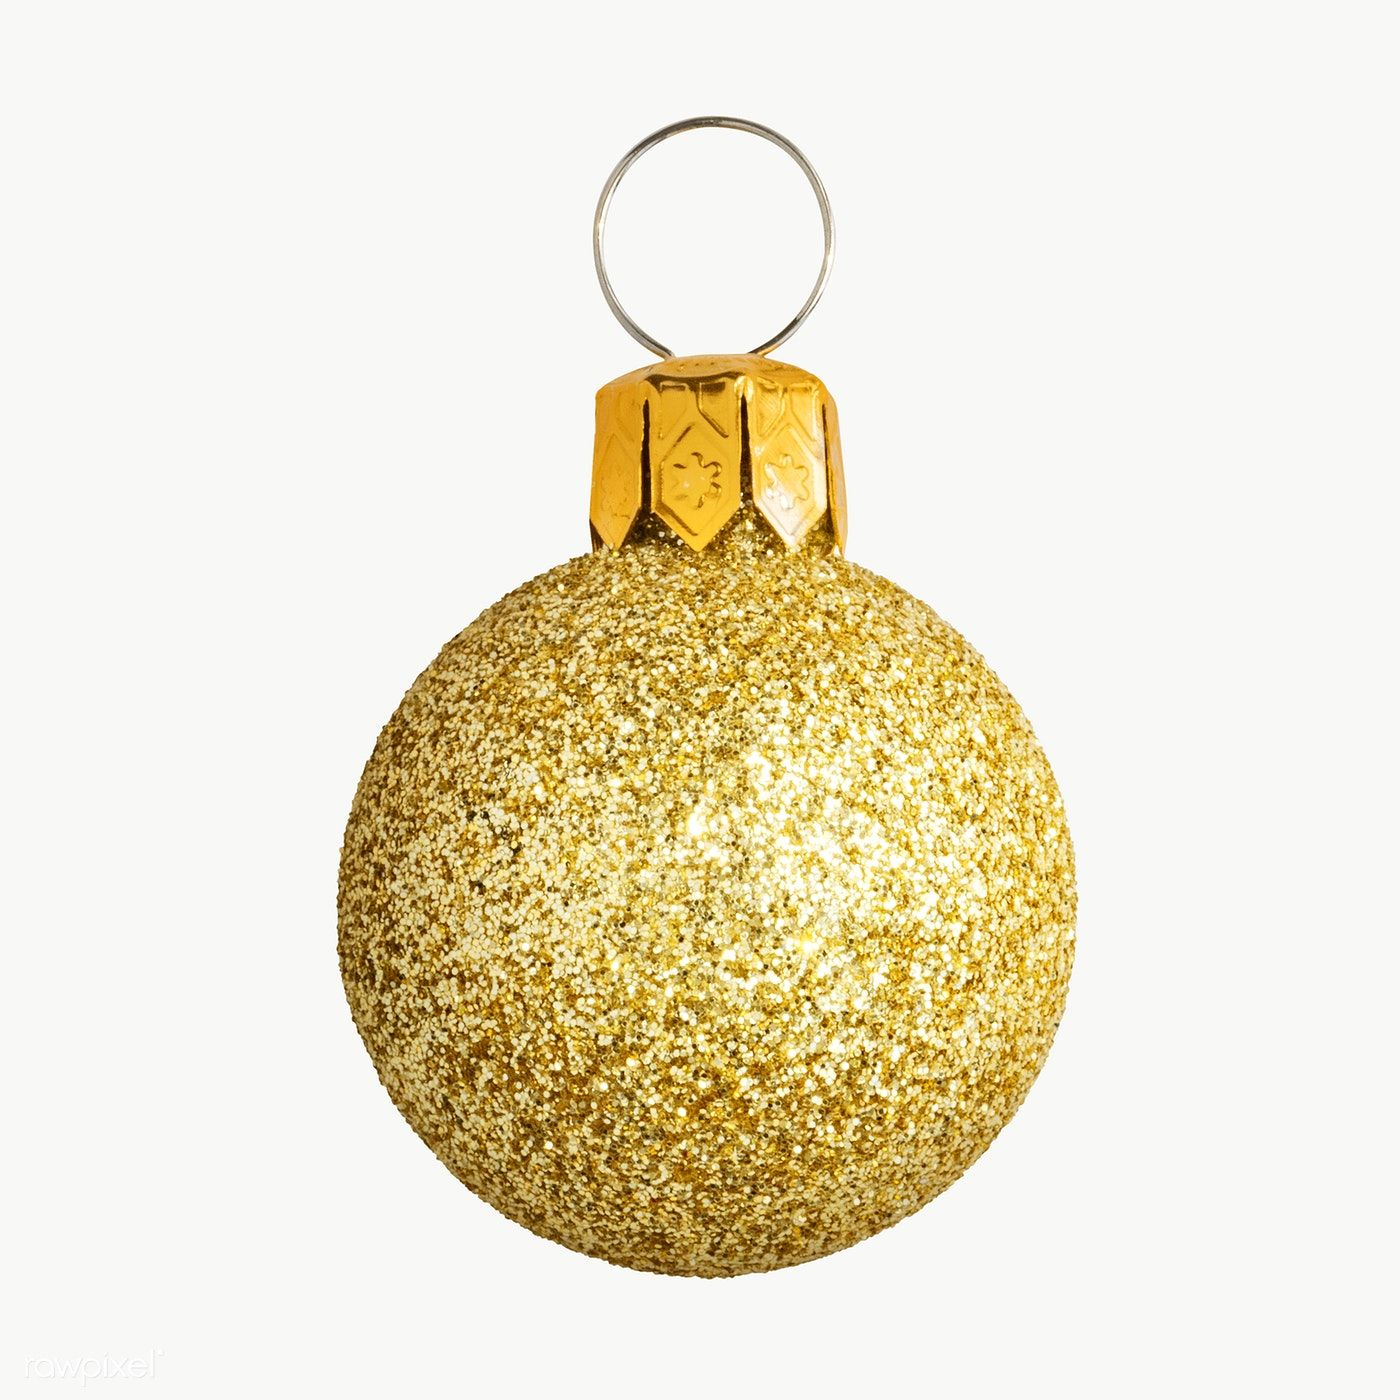 Download Premium Png Of A Glitter Gold Ball Christmas Ornament On Christmas Ornaments Gold Christmas Ornaments Christmas Bulbs